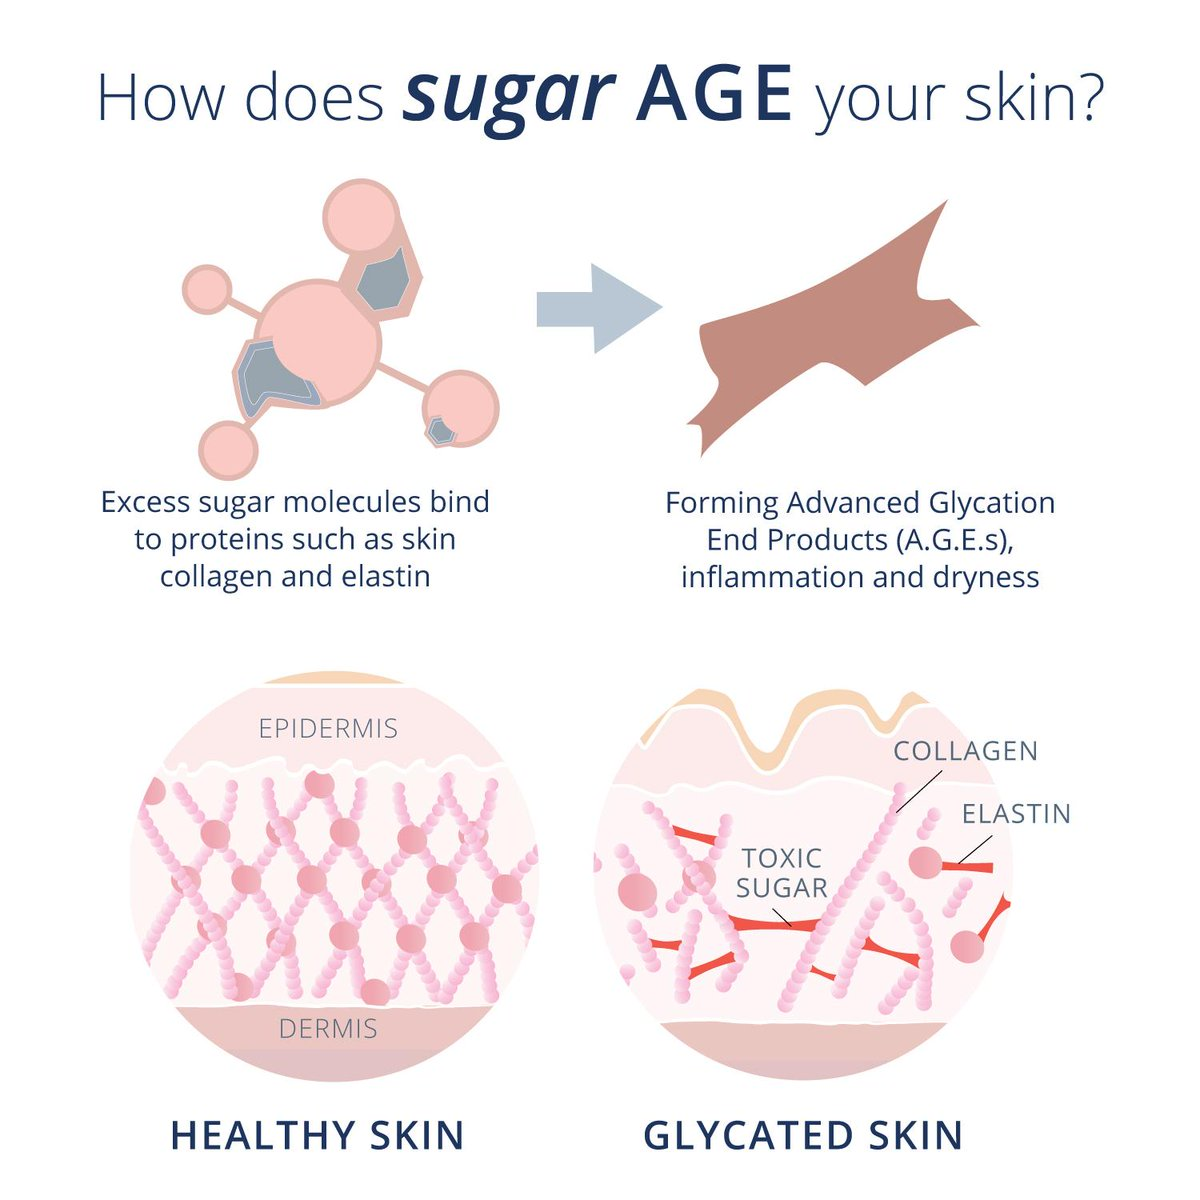 """Skin Online on Twitter: """"HOW SUGAR LEADS TO GLYCATION What is sugar really  doing to our cells and tissues that is so very harmful? READ MORE:  https://t.co/W8ca9PtlOO #SkinOnline #SkinOnlineBlog #sugar #glycation  #ageing #"""